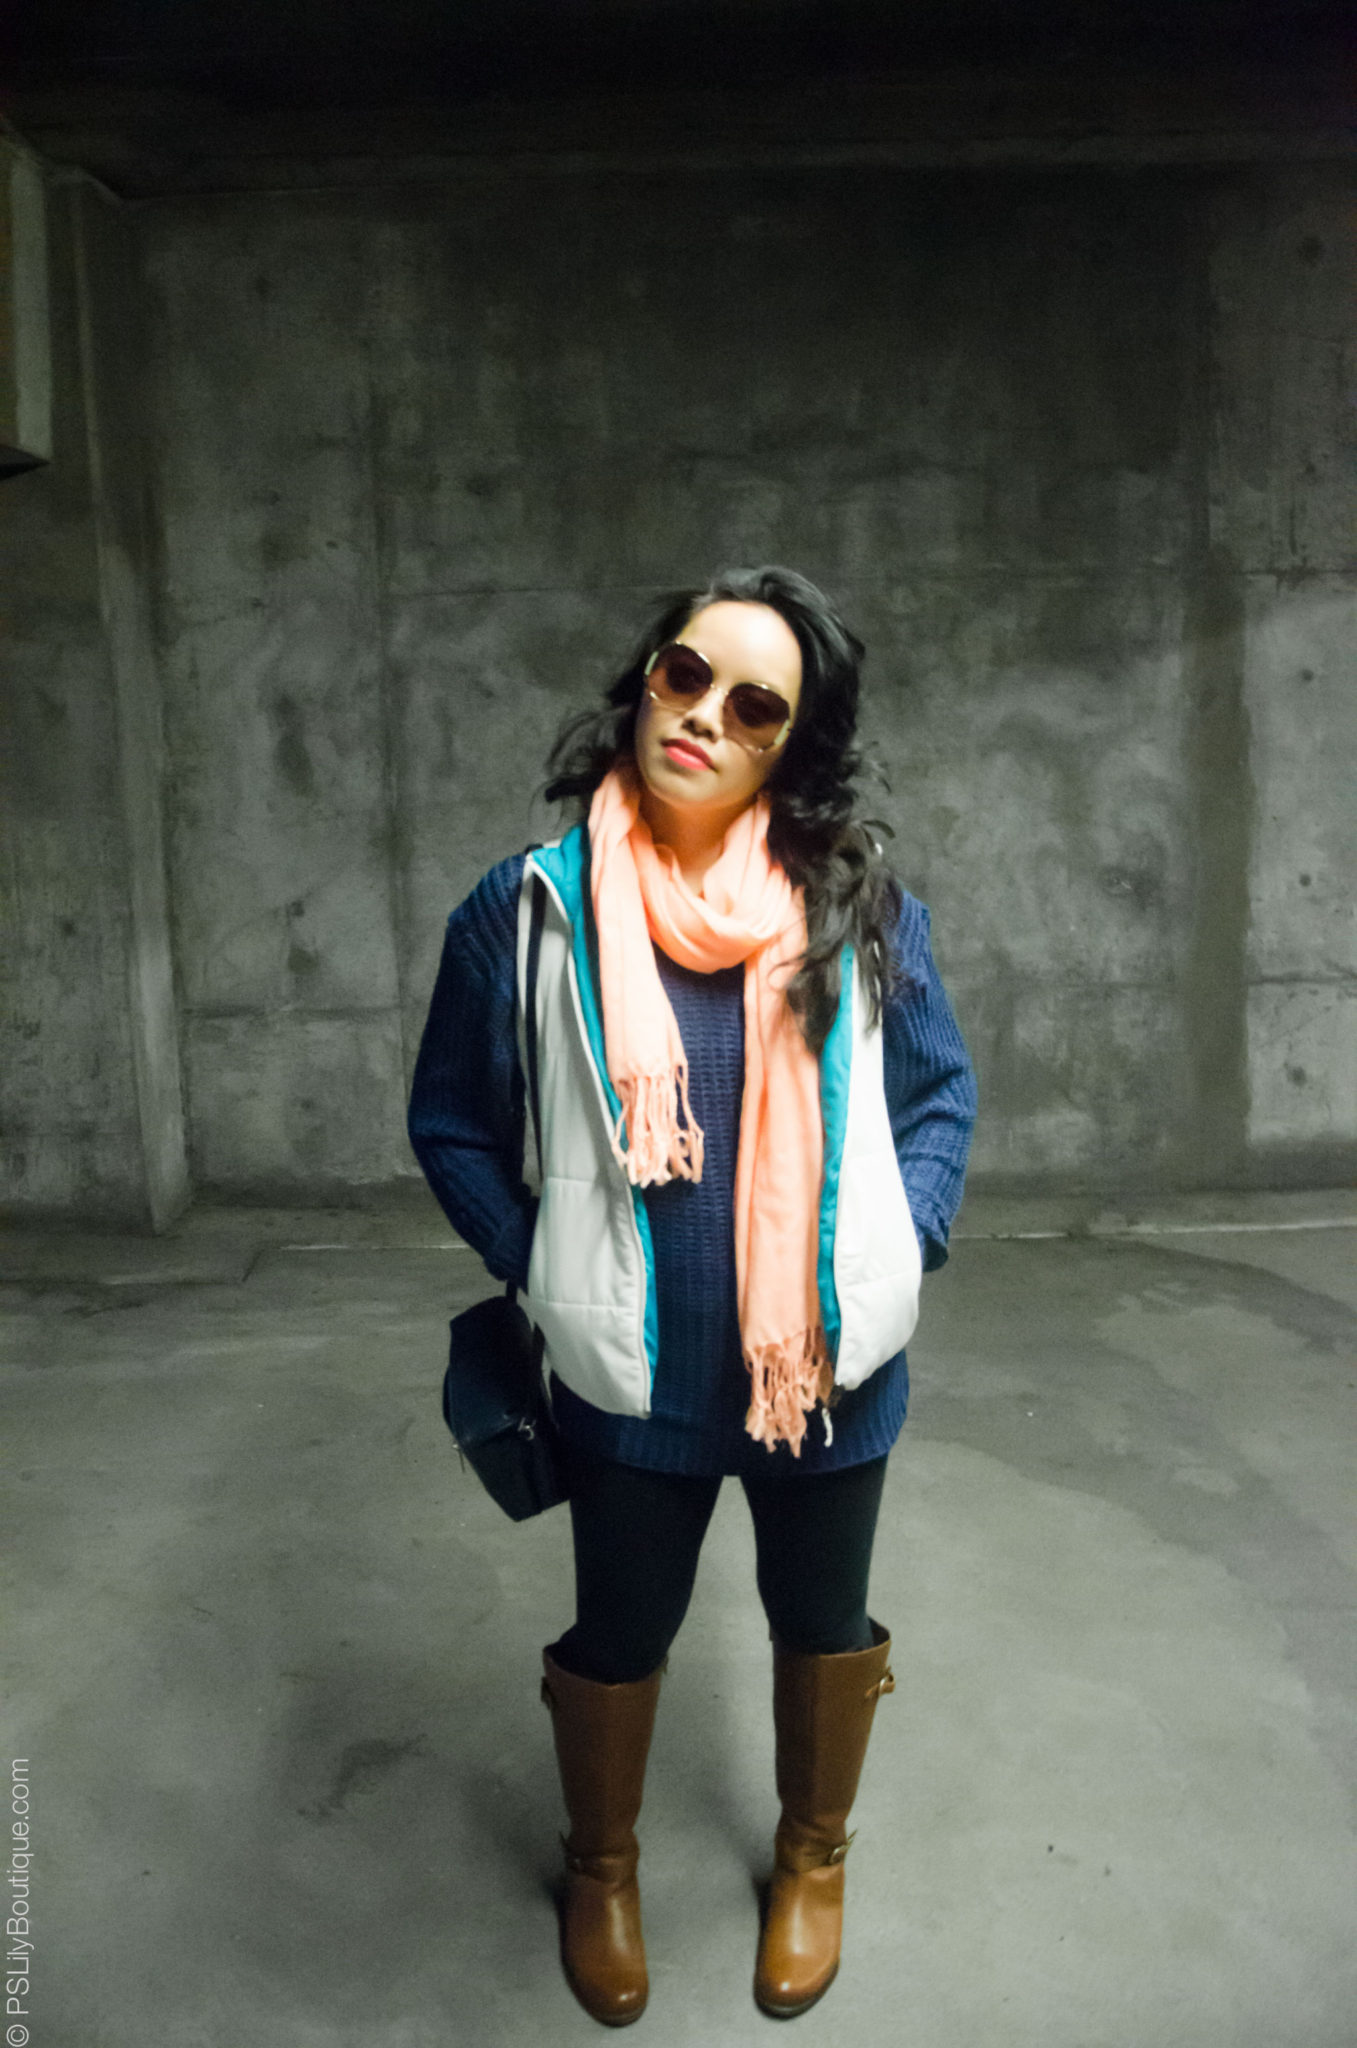 Instagram: @pslilyboutique, Pinterest, Los Angeles fashion blogger, top fashion blog, best fashion blog, fashion & personal style blog, travel blog, travel blogger, LA fashion blogger, Cozy-Up-PSLilyBoutique-a-fashion-and-personal-style-blog-target-white-puffer-vest-naturalizer-riding-Brown_Boot-fall-winter-2018-outfit-ideas-12-17-18-3